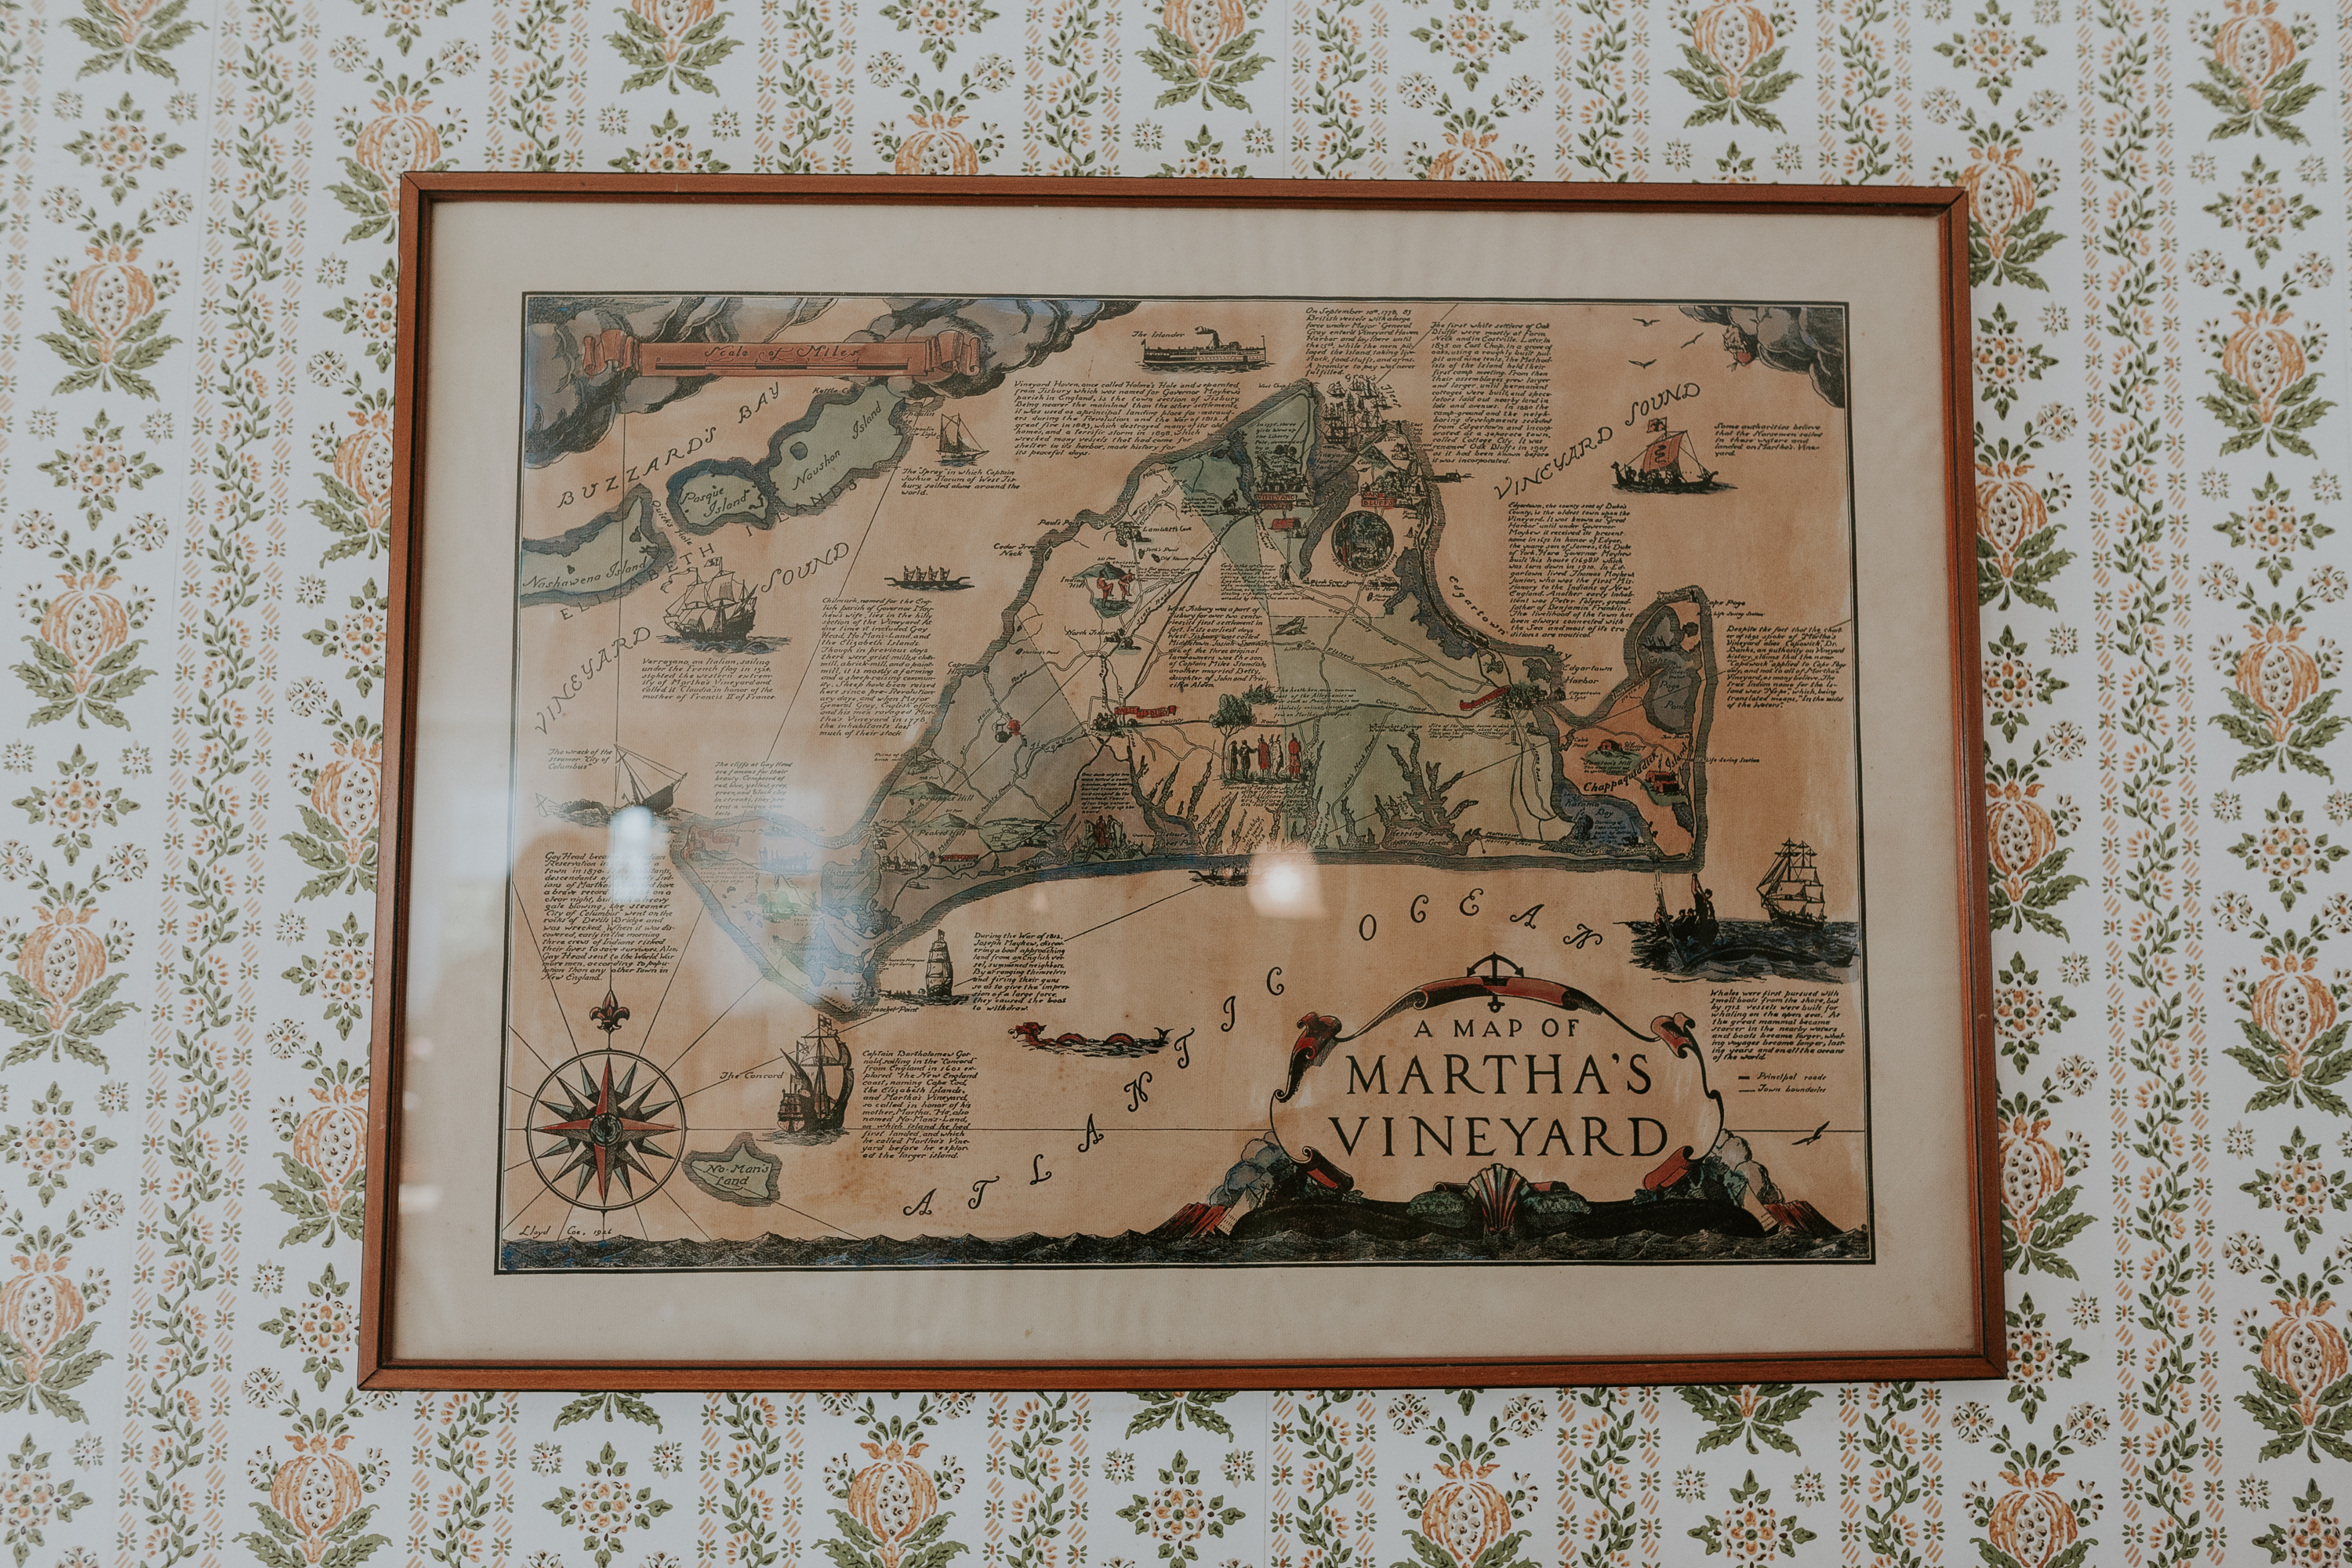 map of martha's vineyard, map on wall, map of island, picture of martha's vineyard on wall, wallpaper wall, vineyard